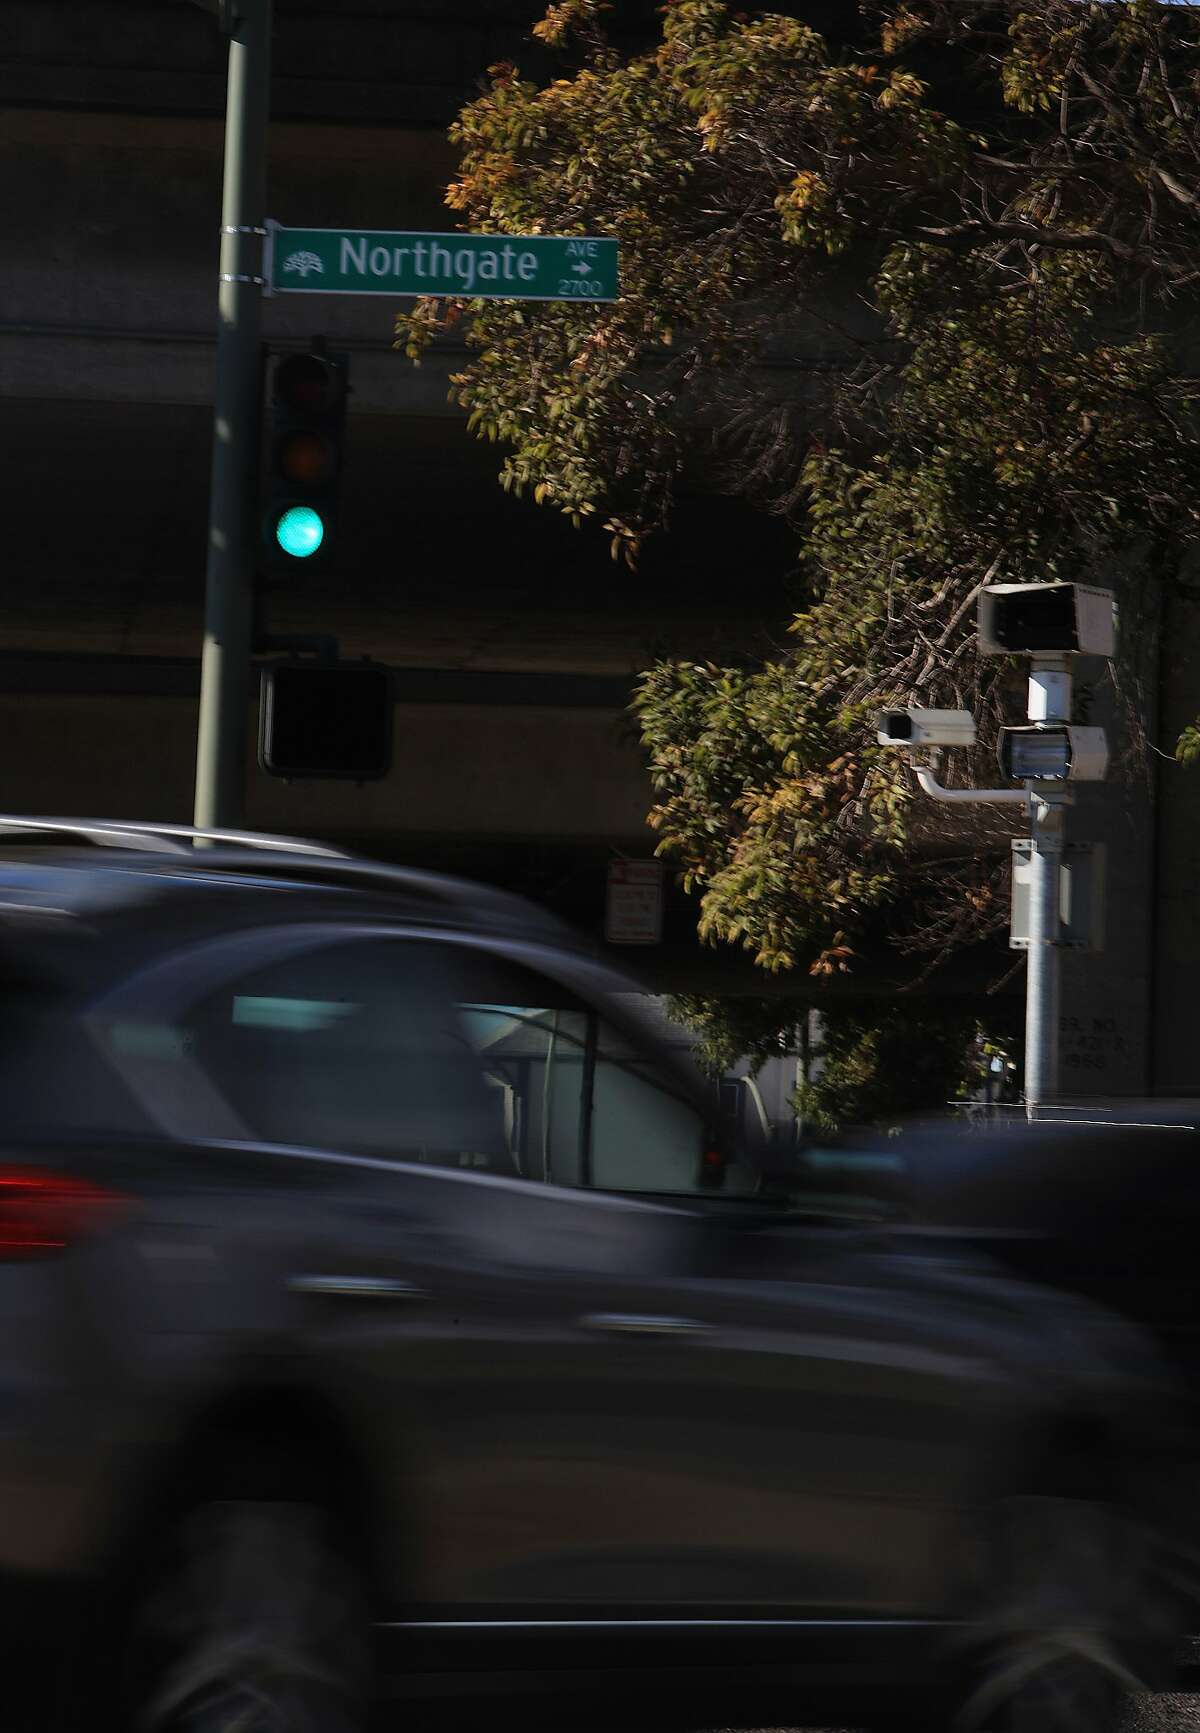 In this file photo, a red light camera unit is seen at the 27th St. and Northgate Avenue next to an on ramp to I-580 in Oakland.